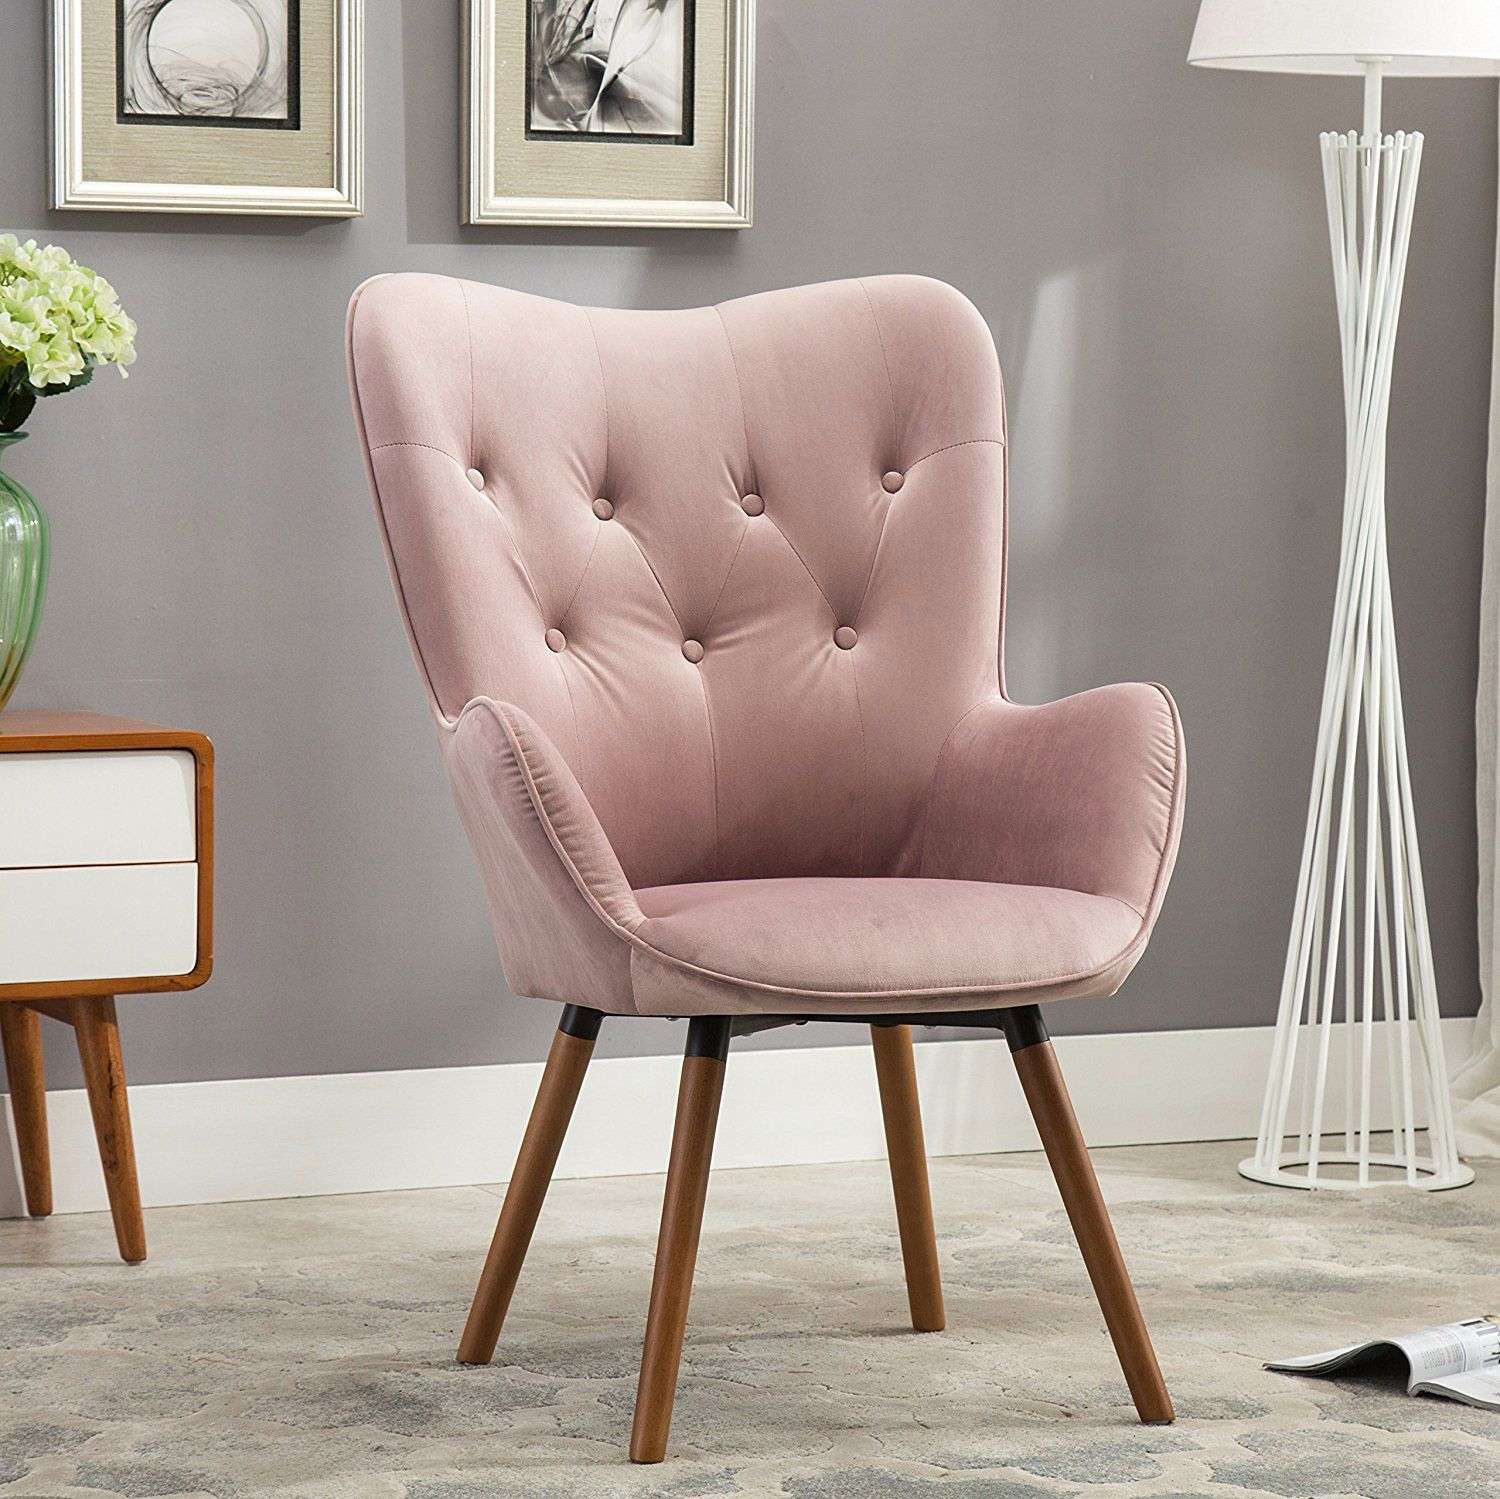 31 Millennial Pink Things You Can Buy On Amazon | Furniture Throughout Focht Armchairs (View 9 of 15)